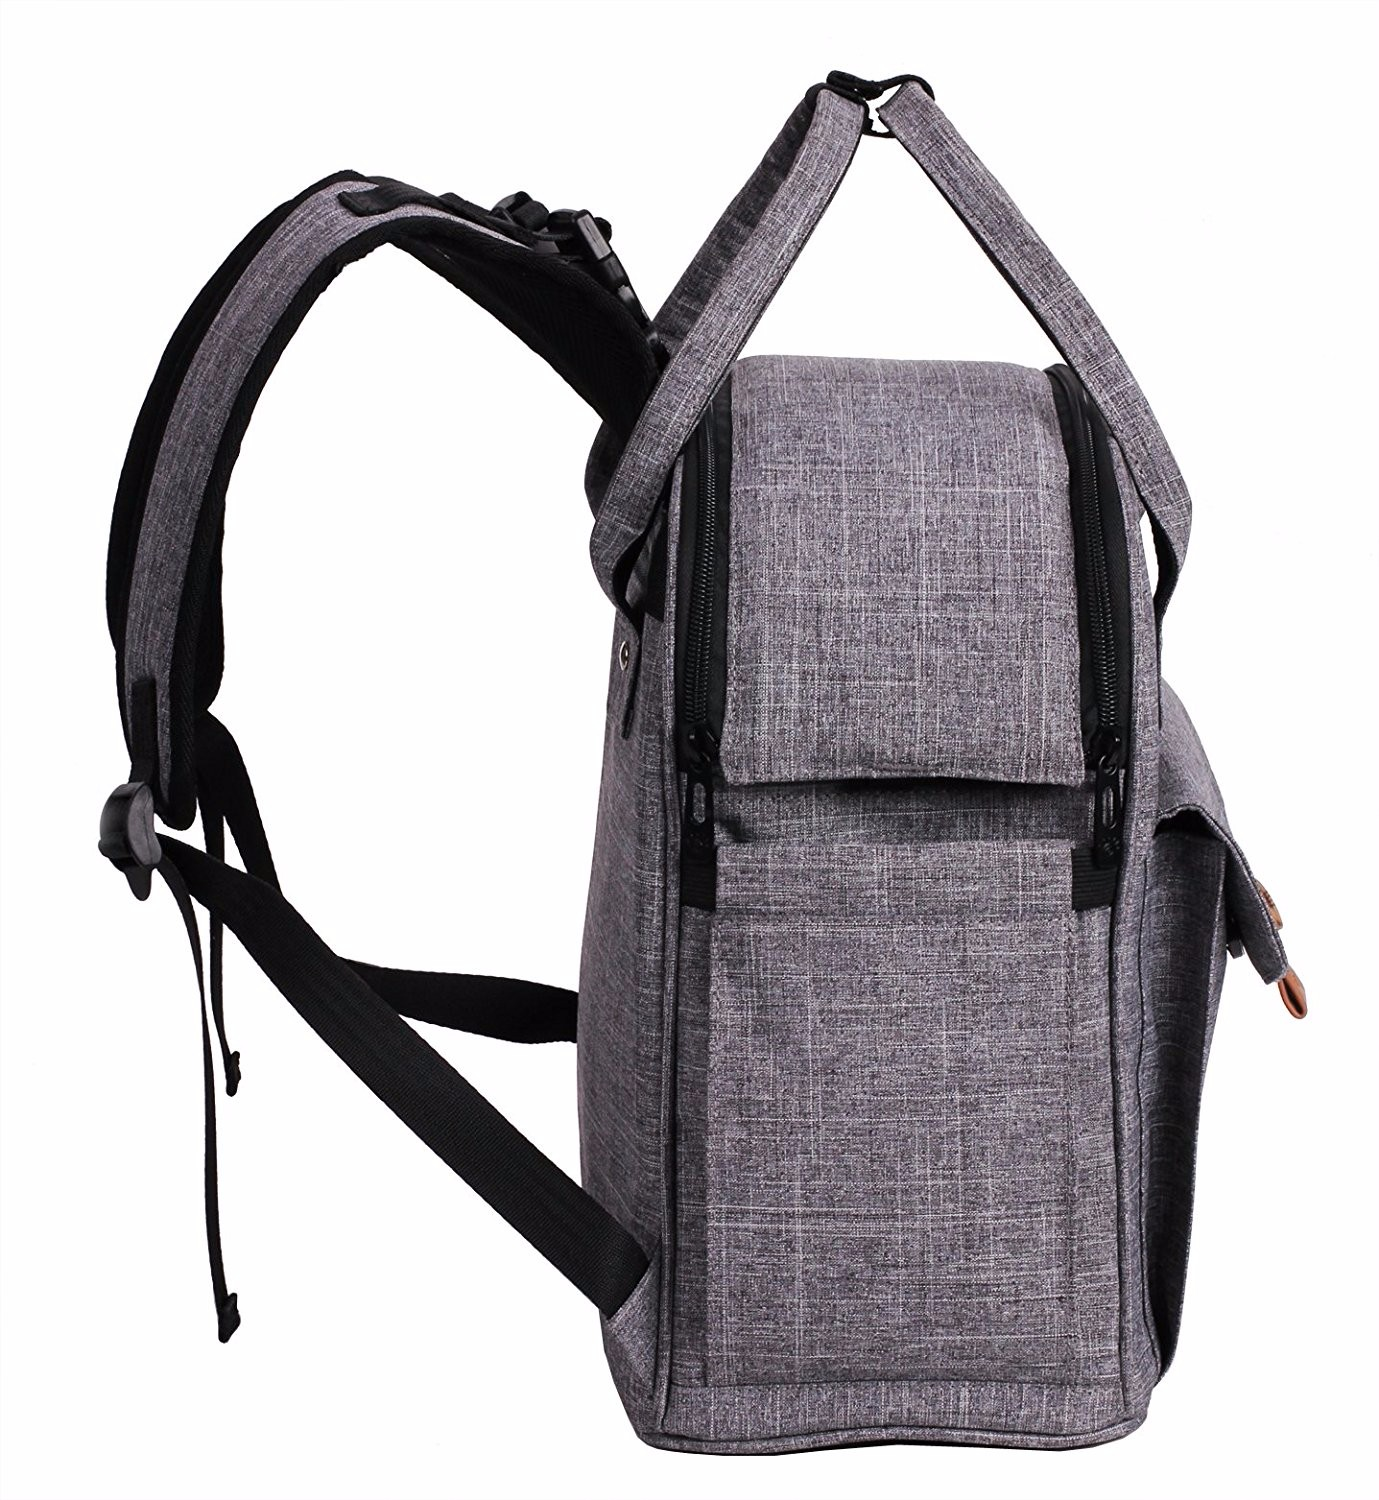 Polyester Backpack Diaper Bag Manufacturers, Polyester Backpack Diaper Bag Factory, Supply Polyester Backpack Diaper Bag